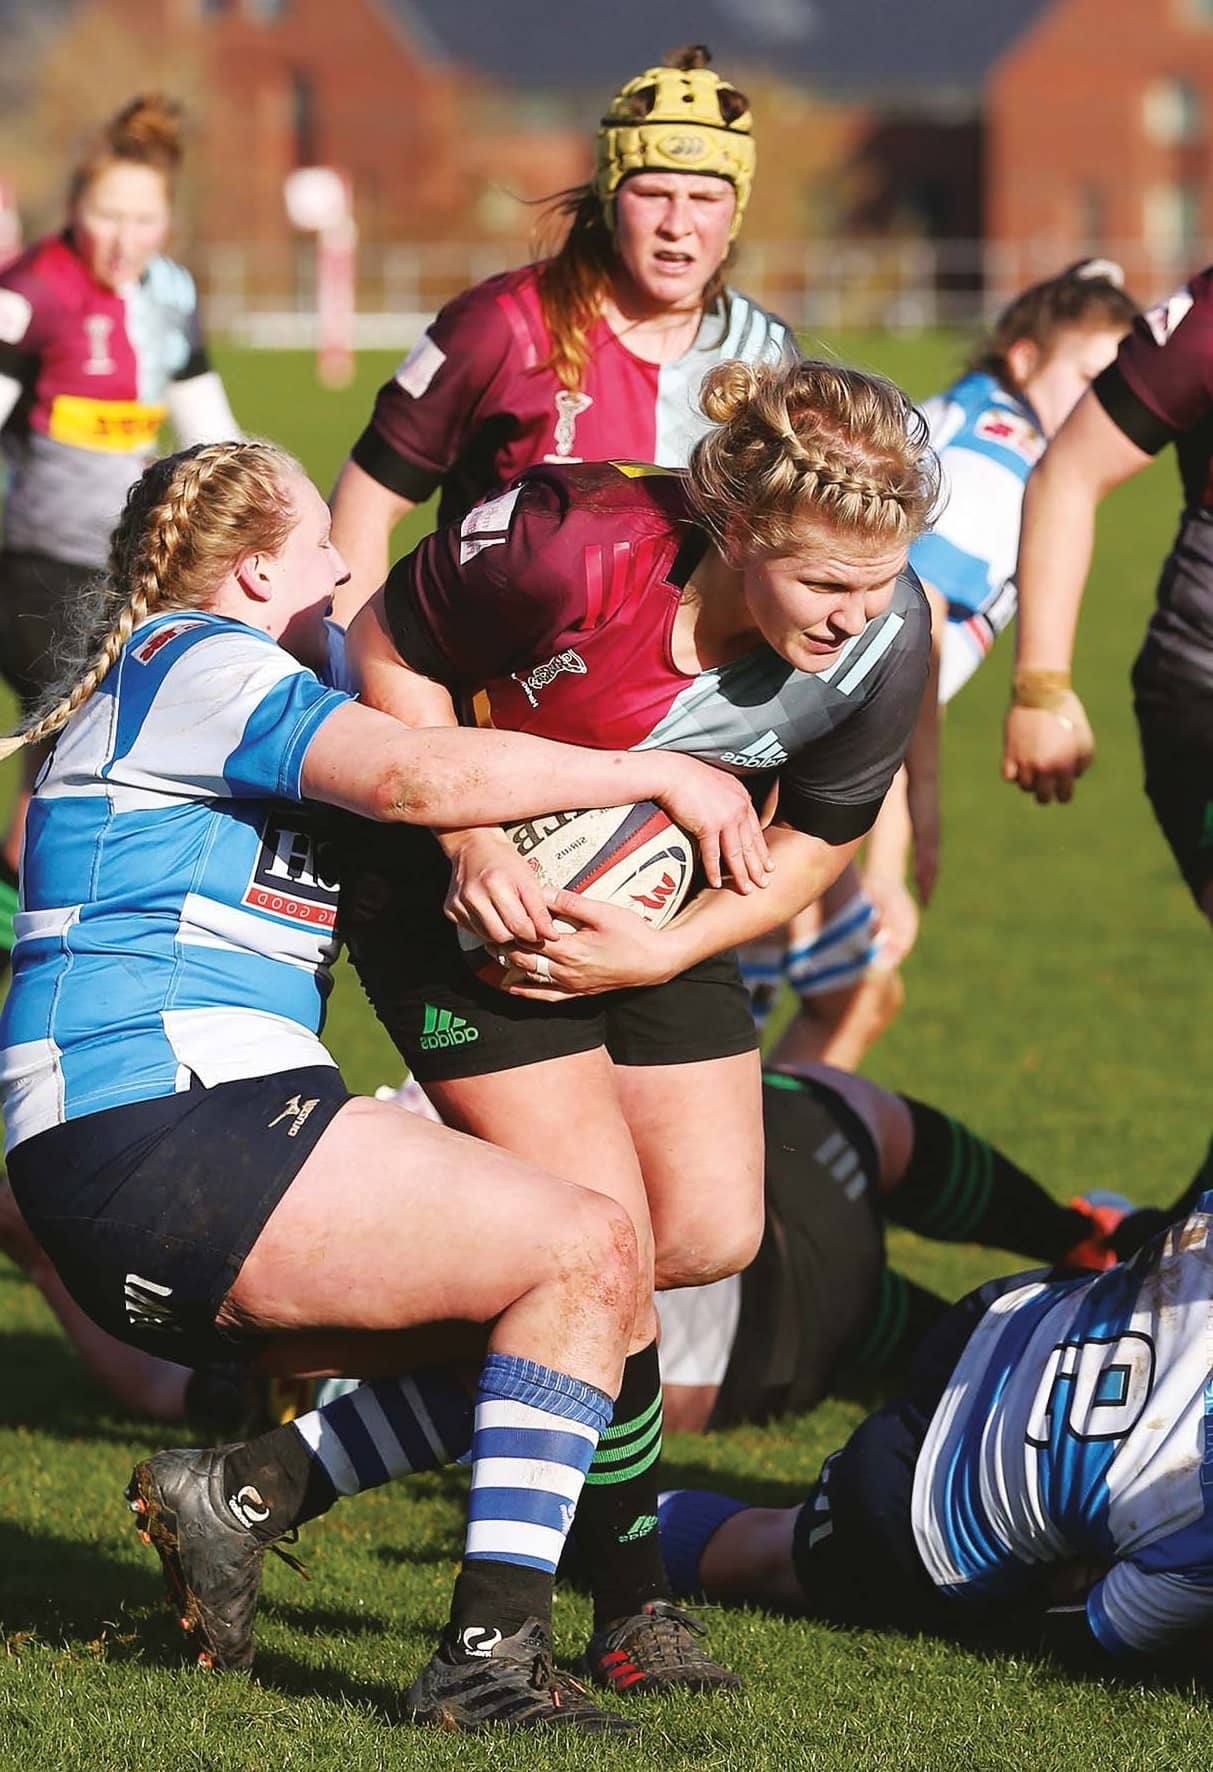 Women's game can point way for restart